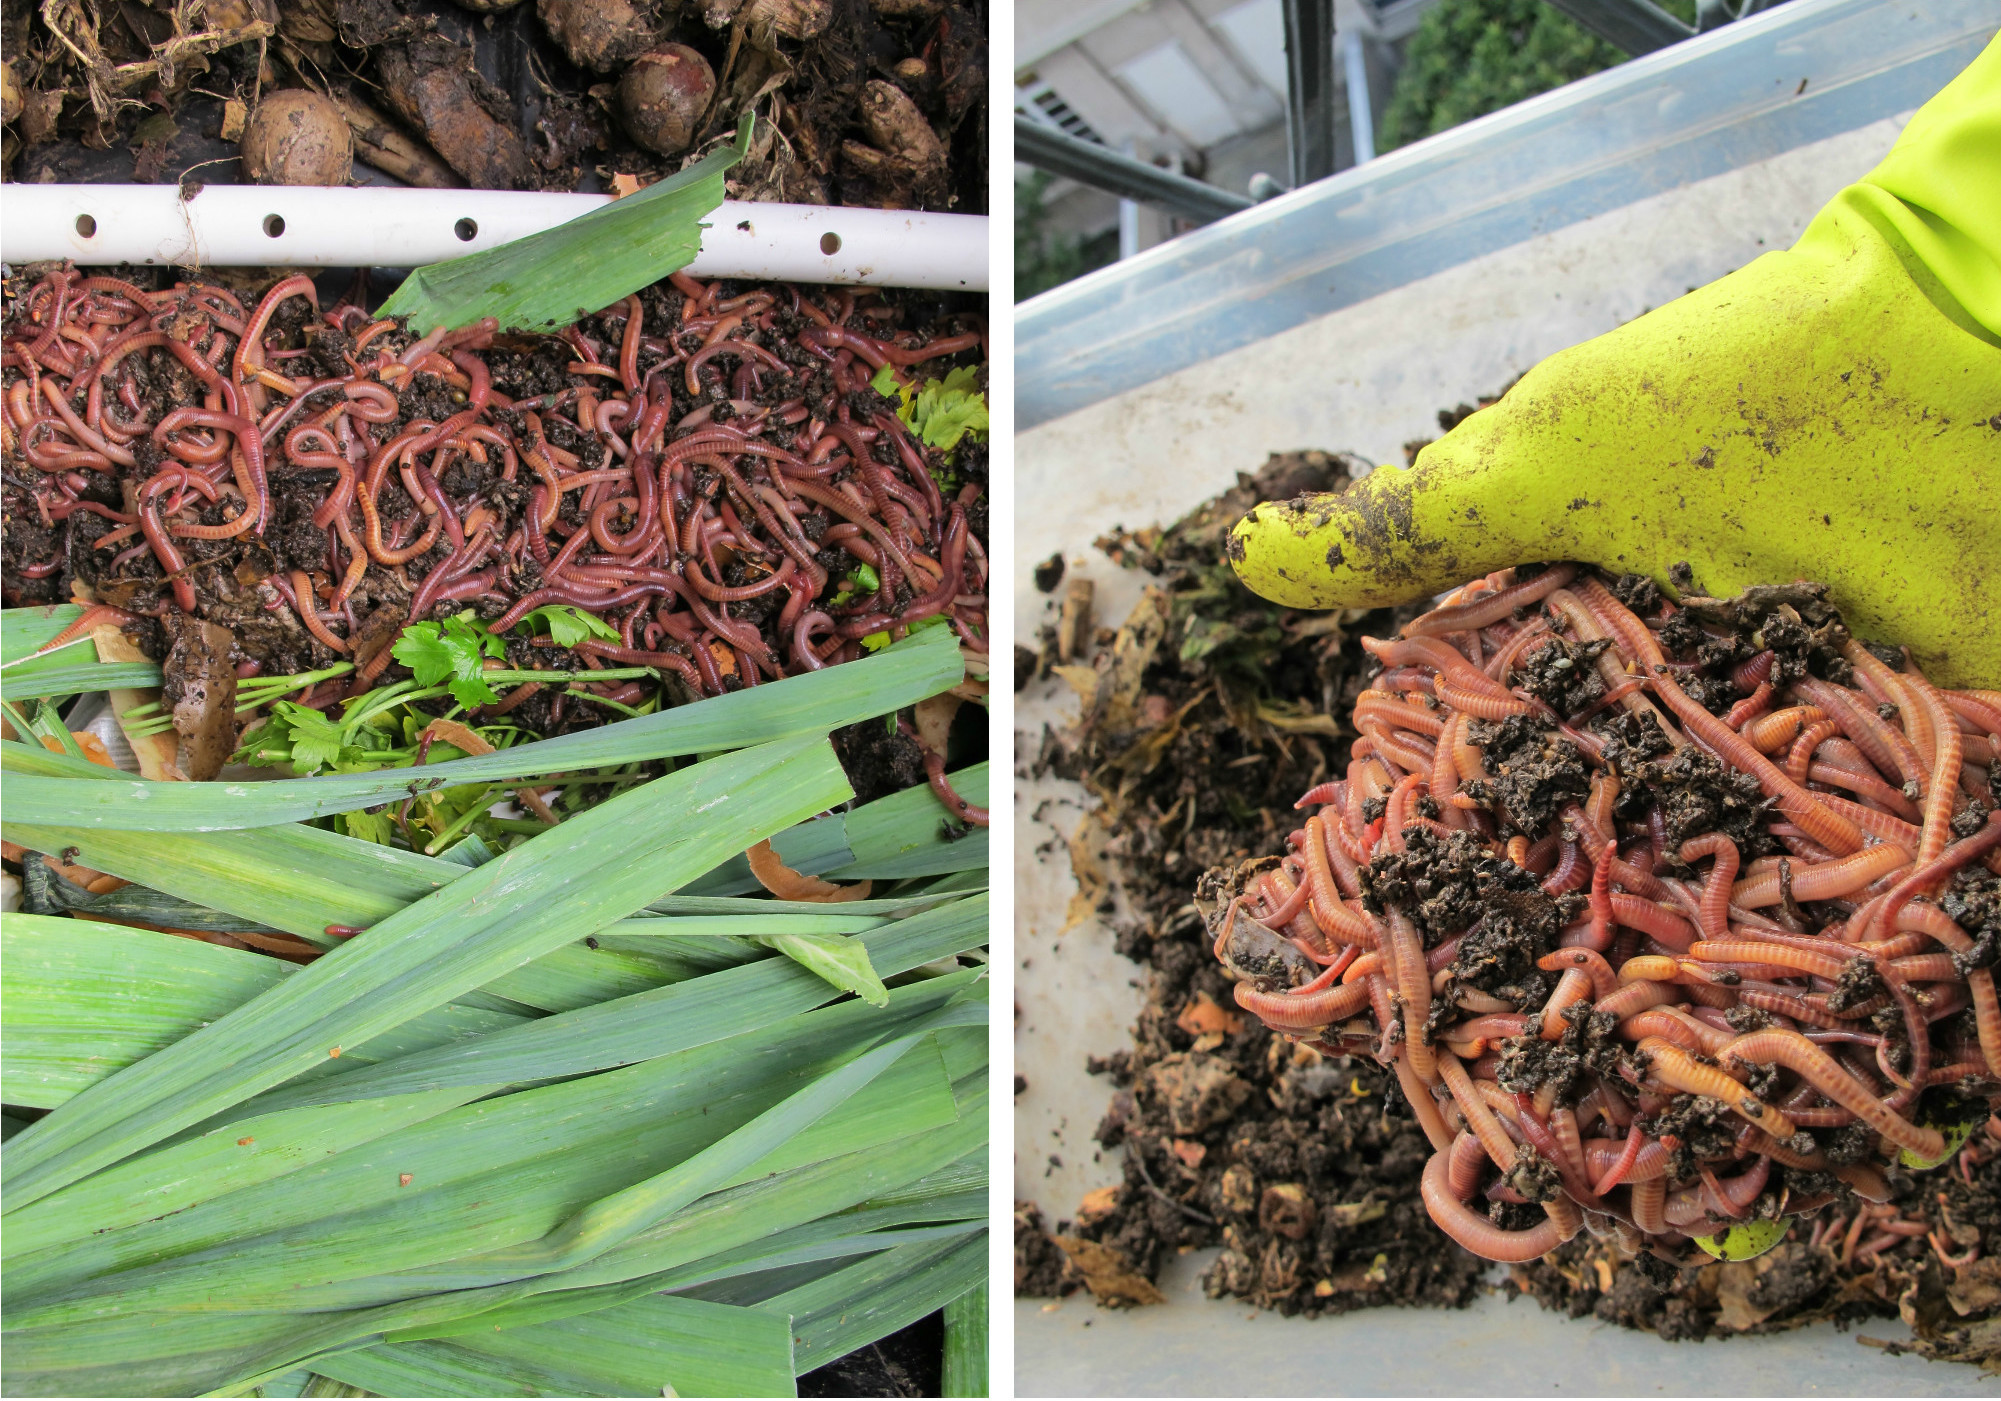 Composting in Paris